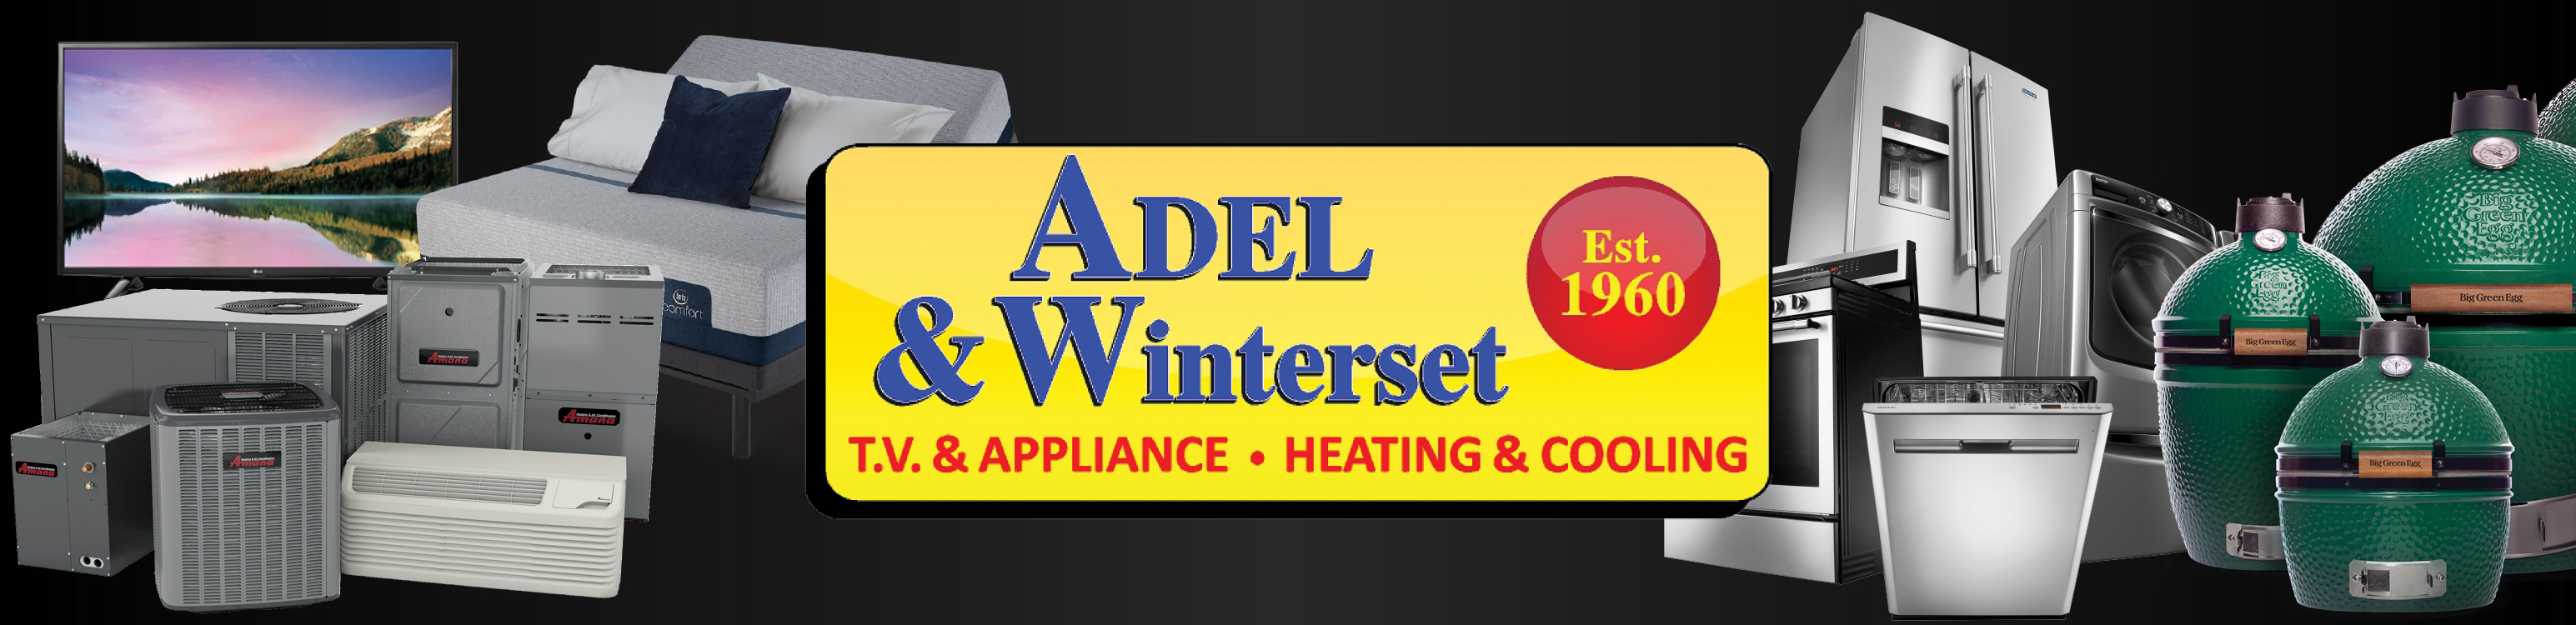 Adel & Winterset TV & Appliance • Heating & Cooling